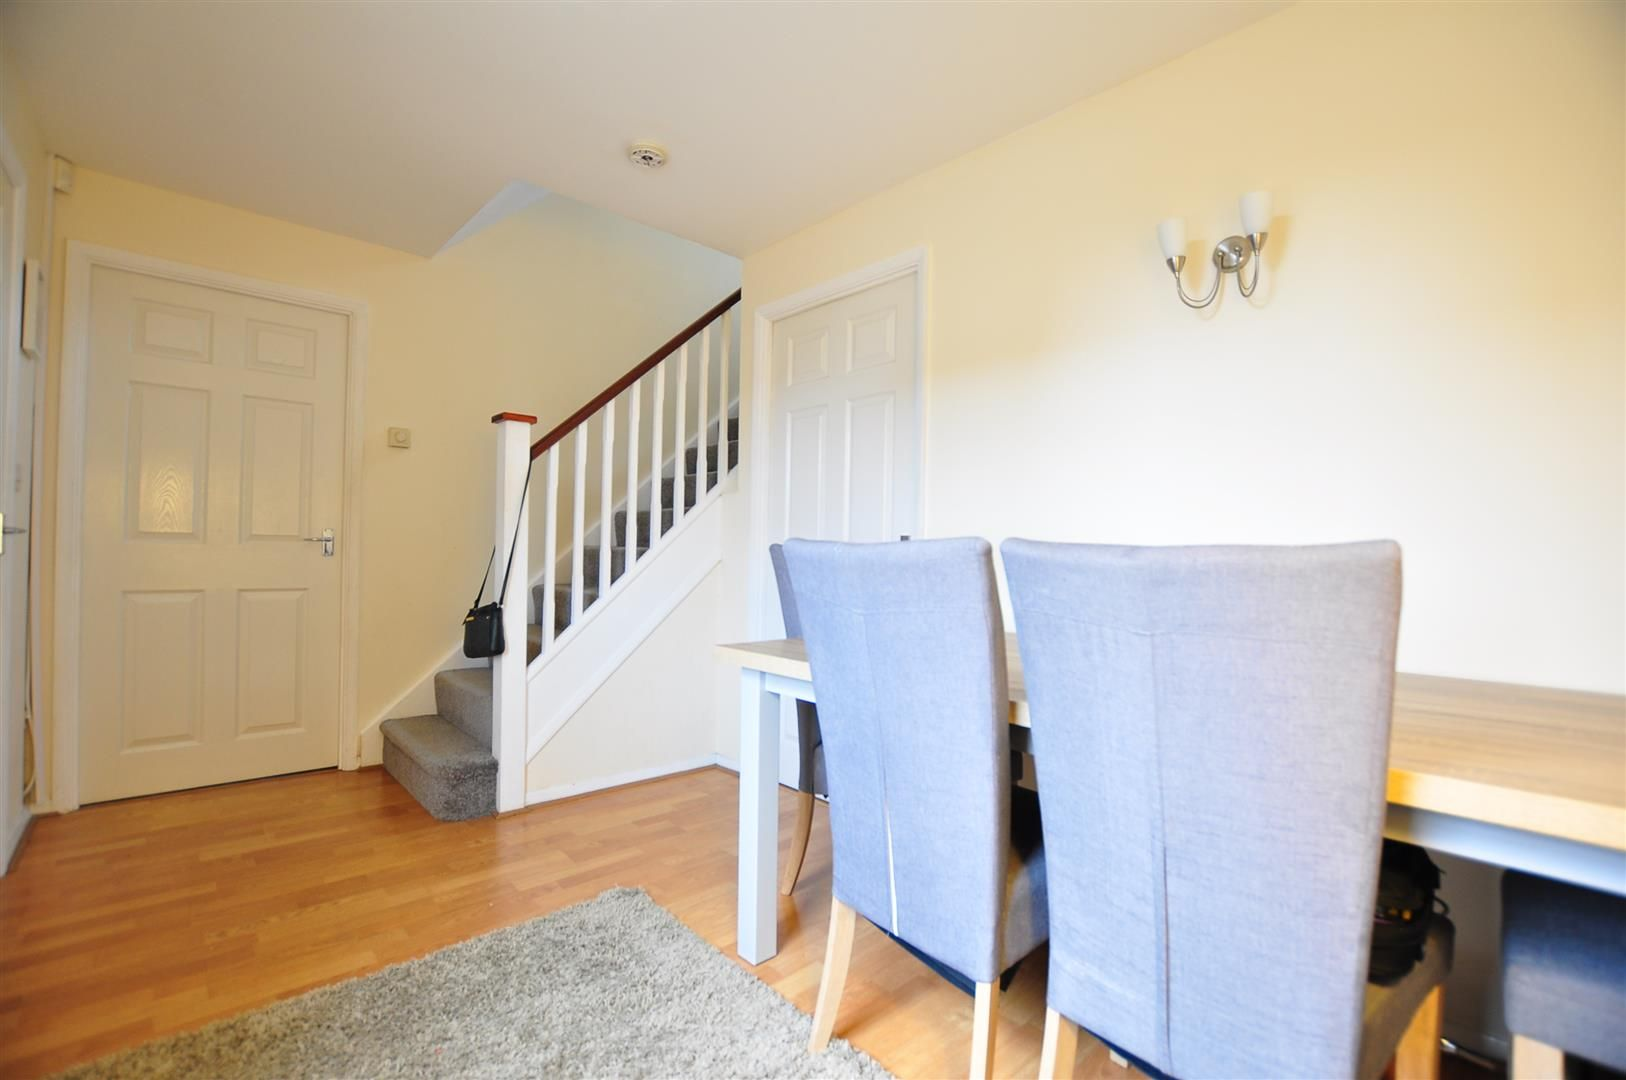 3 bed end-of-terrace for sale  - Property Image 5